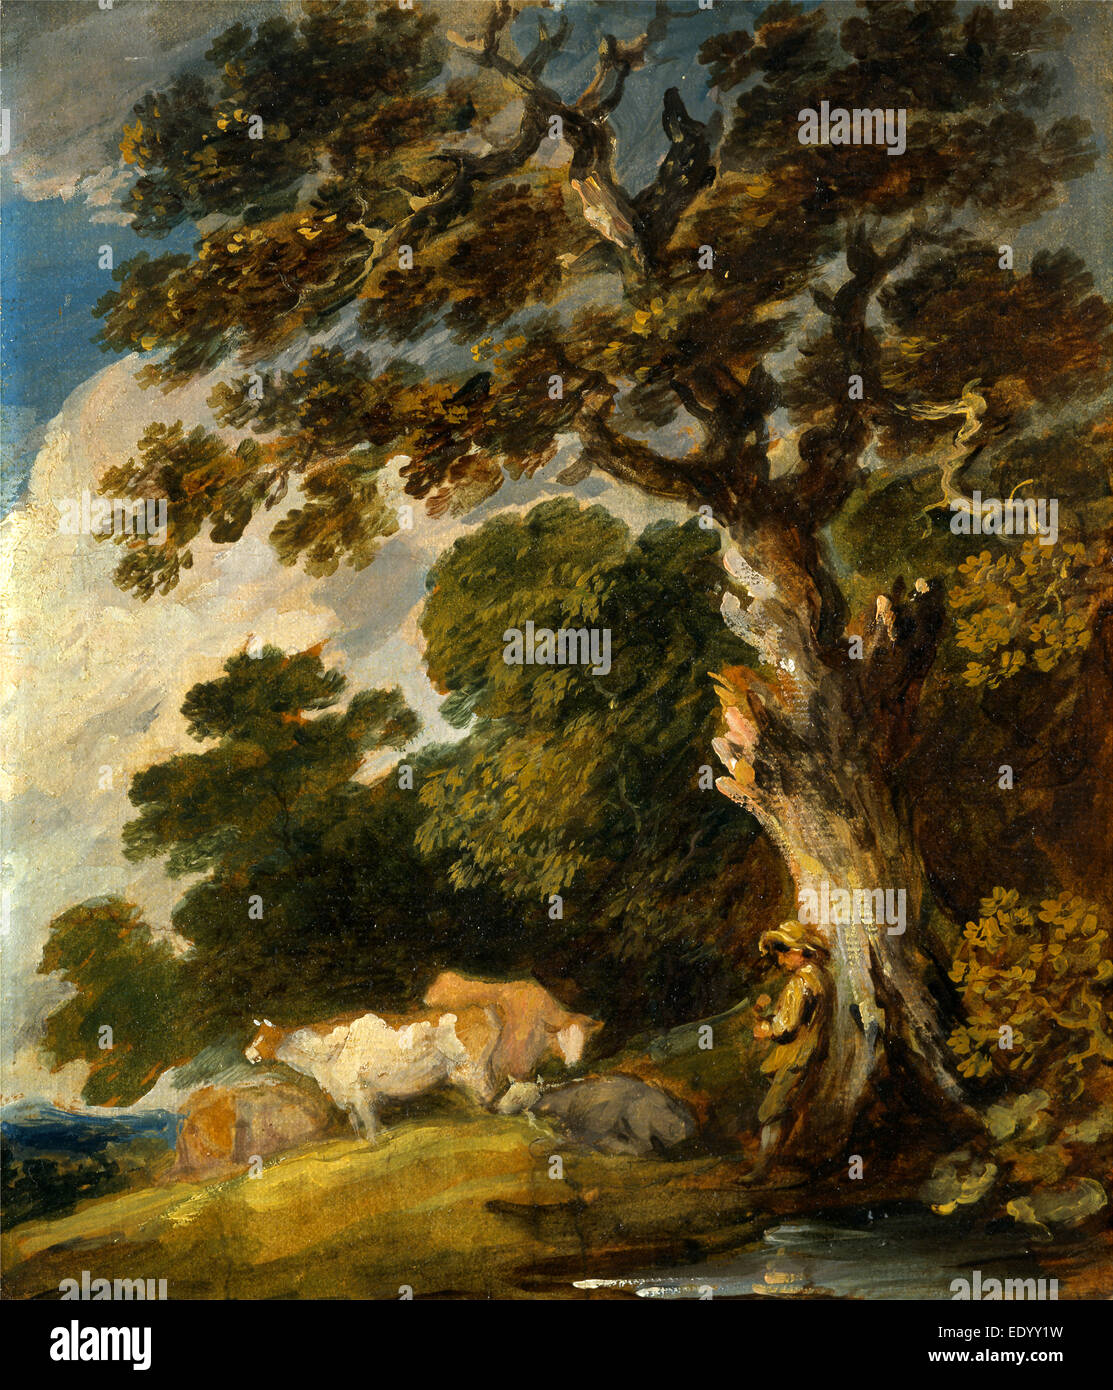 A Wooded Landscape with Cattle and Herdsman, Gainsborough Dupont, 1754-1797, British - Stock Image